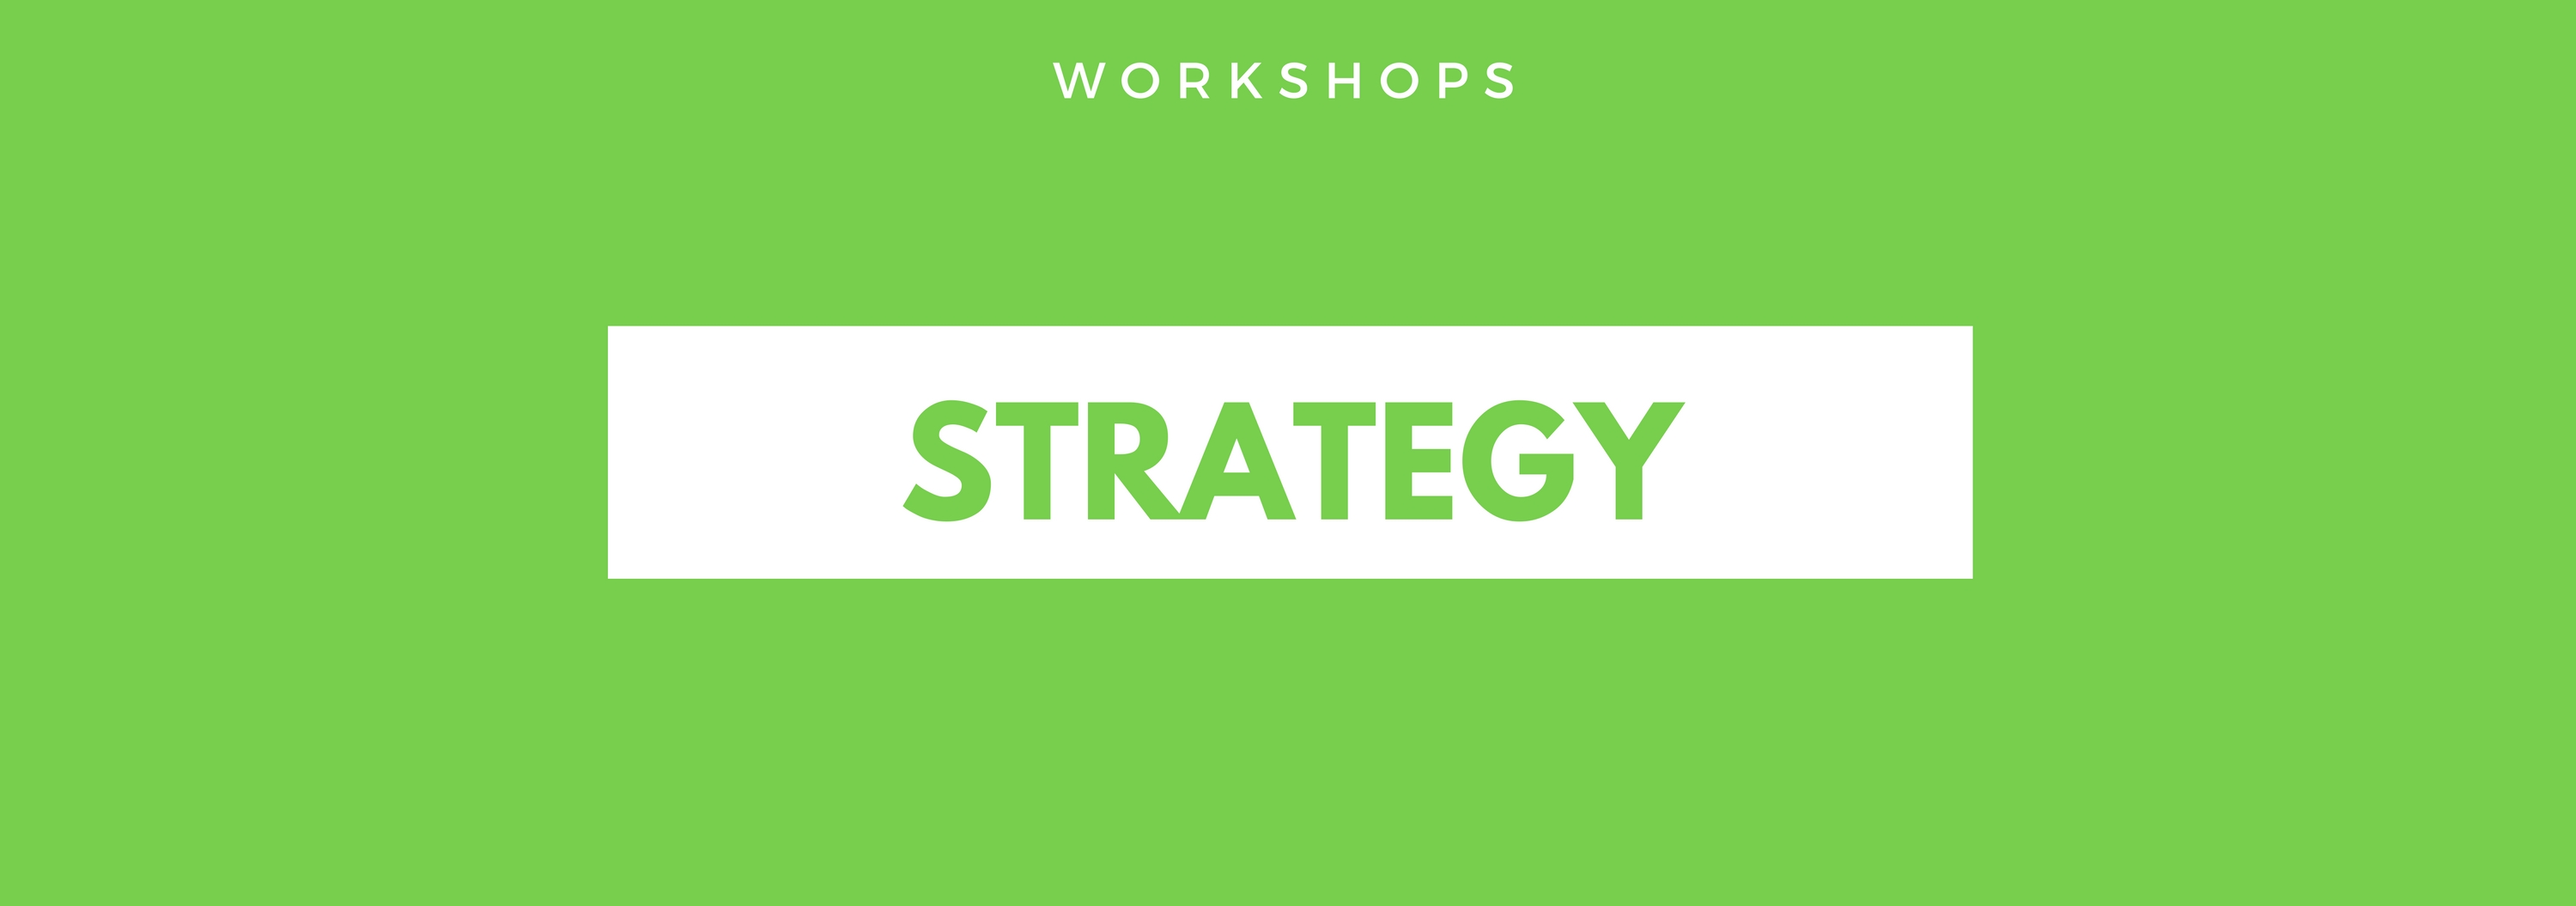 Strategy Design Workshop Using The Business Model Canvas with Do Tank Do